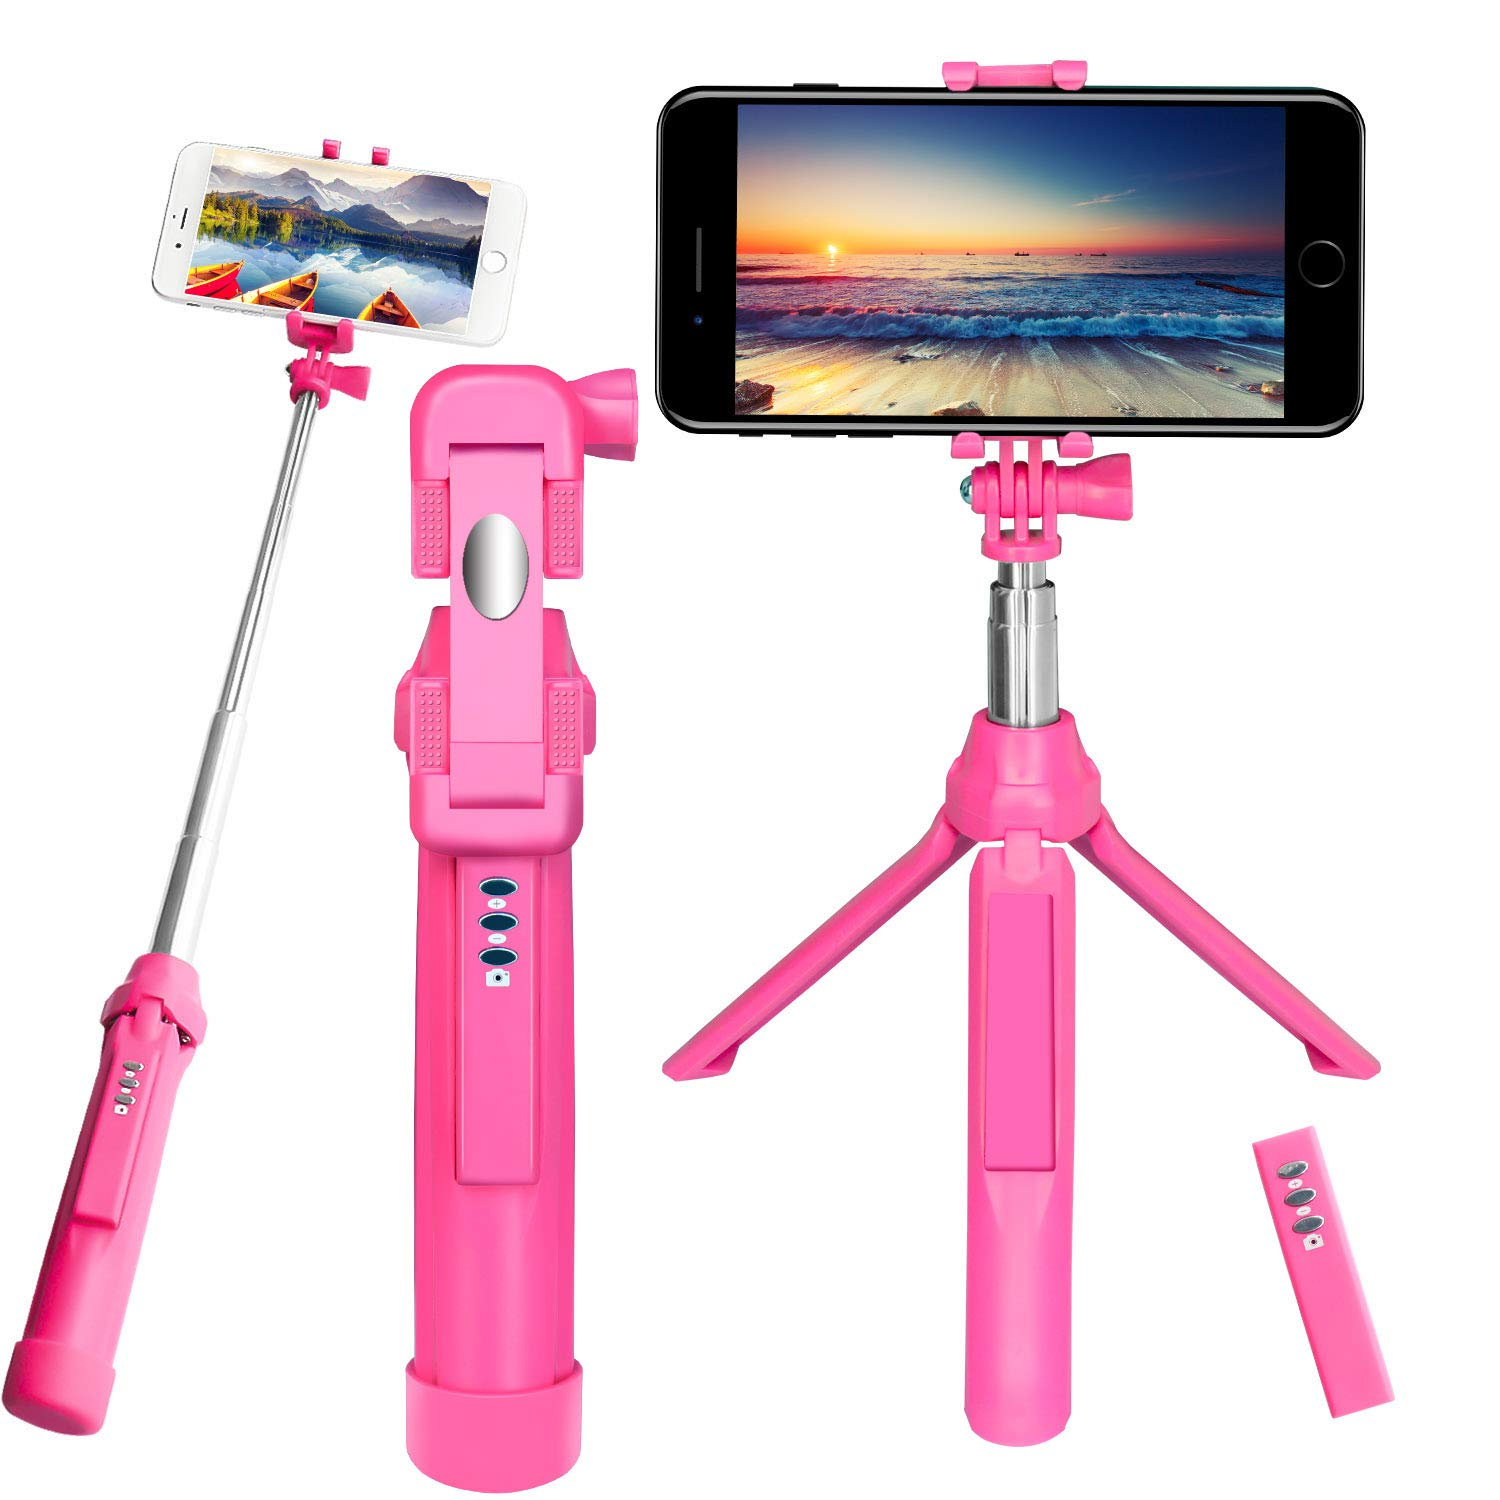 Bluetooth Selfie Stick, Peyou® [3 in 1] Wireless Selfie Stick Extendable Monopod Handheld Tripod Stand w/ Removable Remote Shutter up to 35.4' for Gopro Camera, for iPhone X 8/8 Plus 7/7 Plus, for Samsung Galaxy Note 8 S8/S8 Plus S7/S7 Edge and Smartph